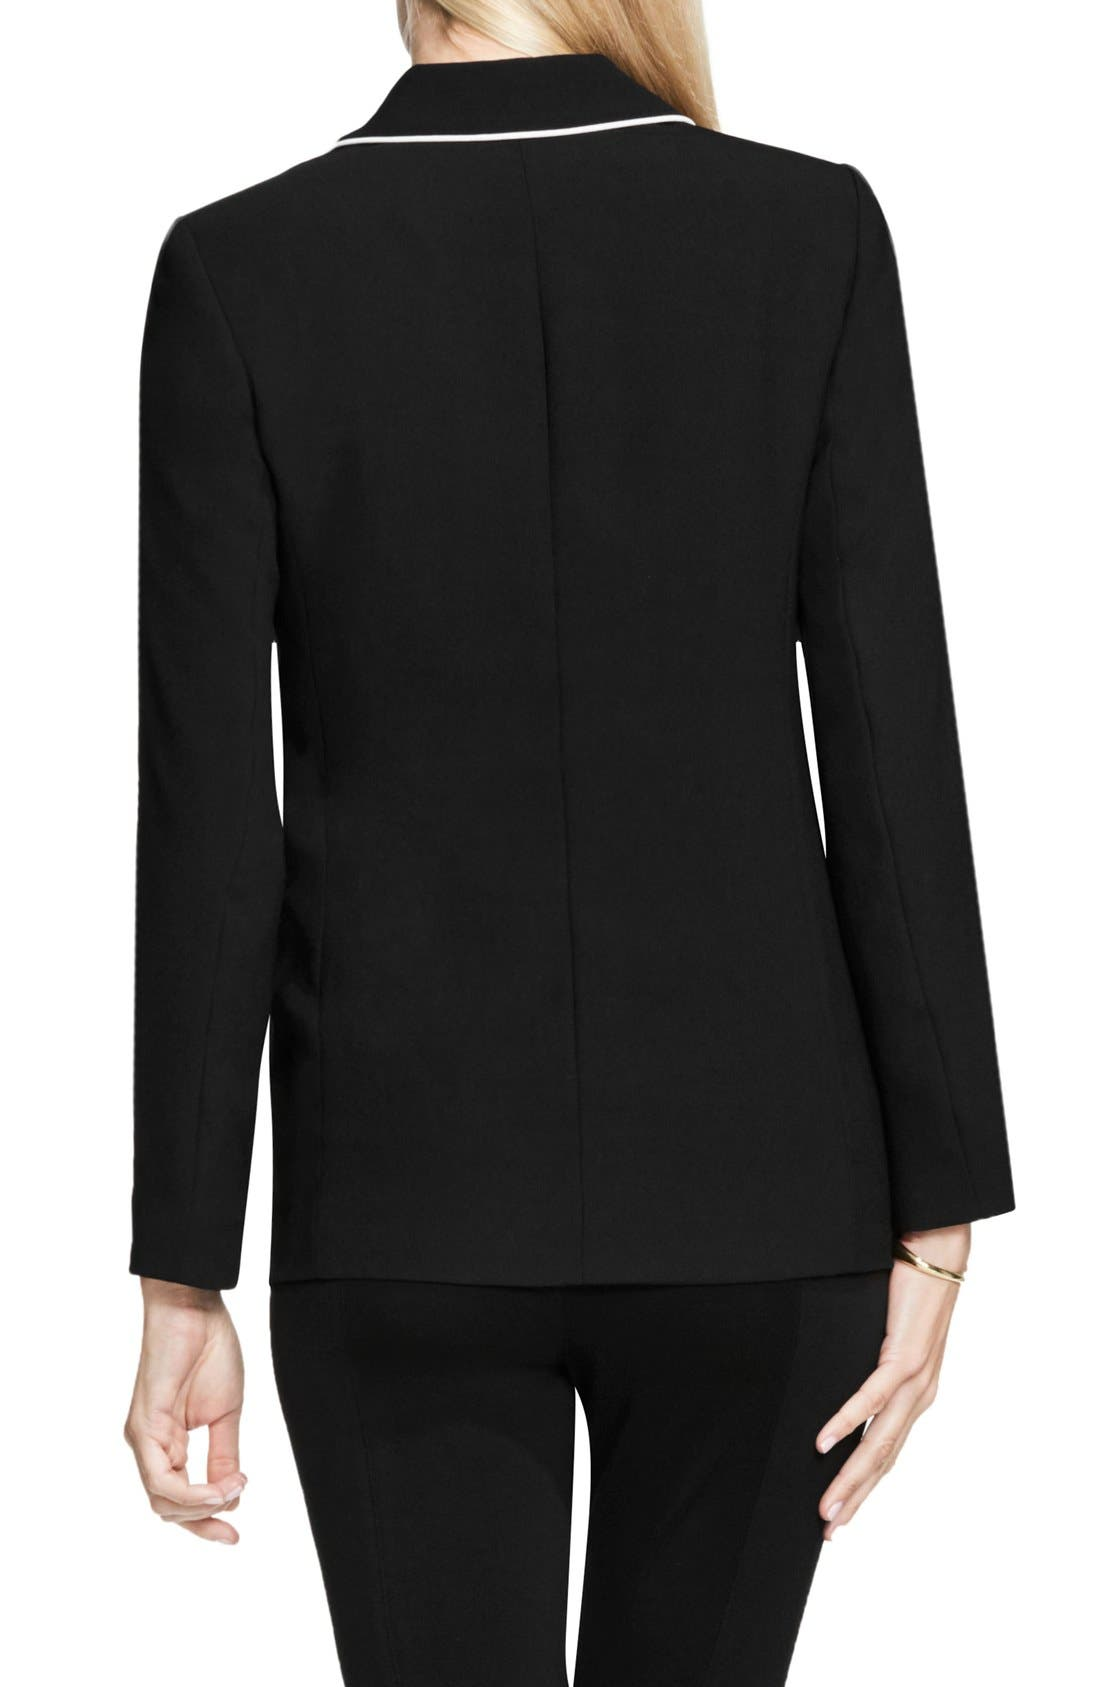 Alternate Image 3  - Vince Camuto Contrast Piping Blazer